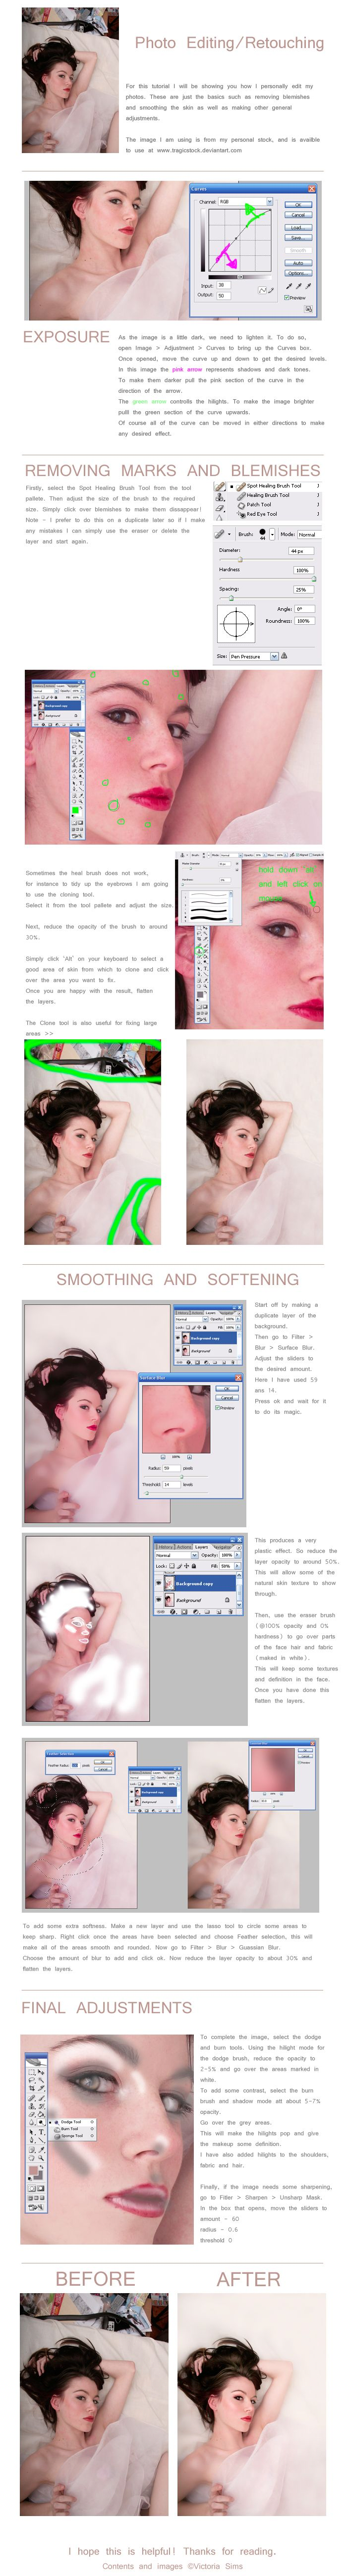 Basic Photo Editing Tutorial by TheTragicTruth-Of-Me on deviantART